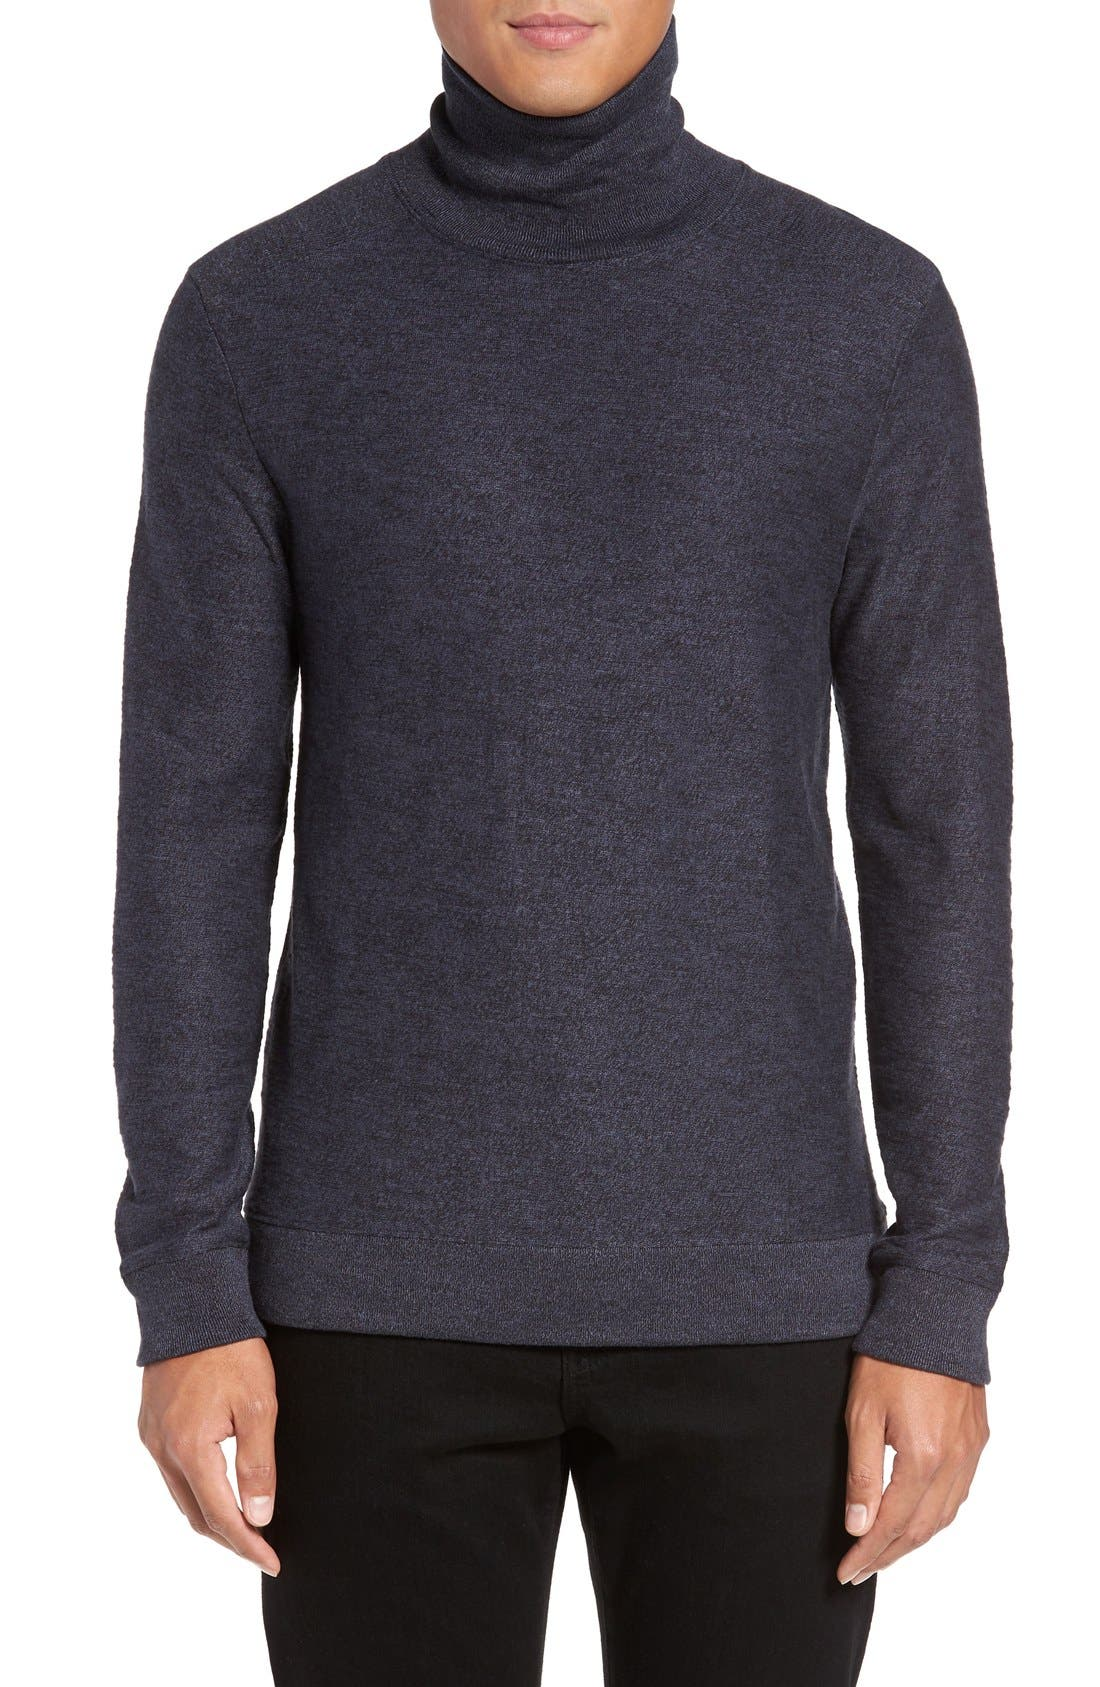 Main Image - Vince Camuto Turtleneck Sweater